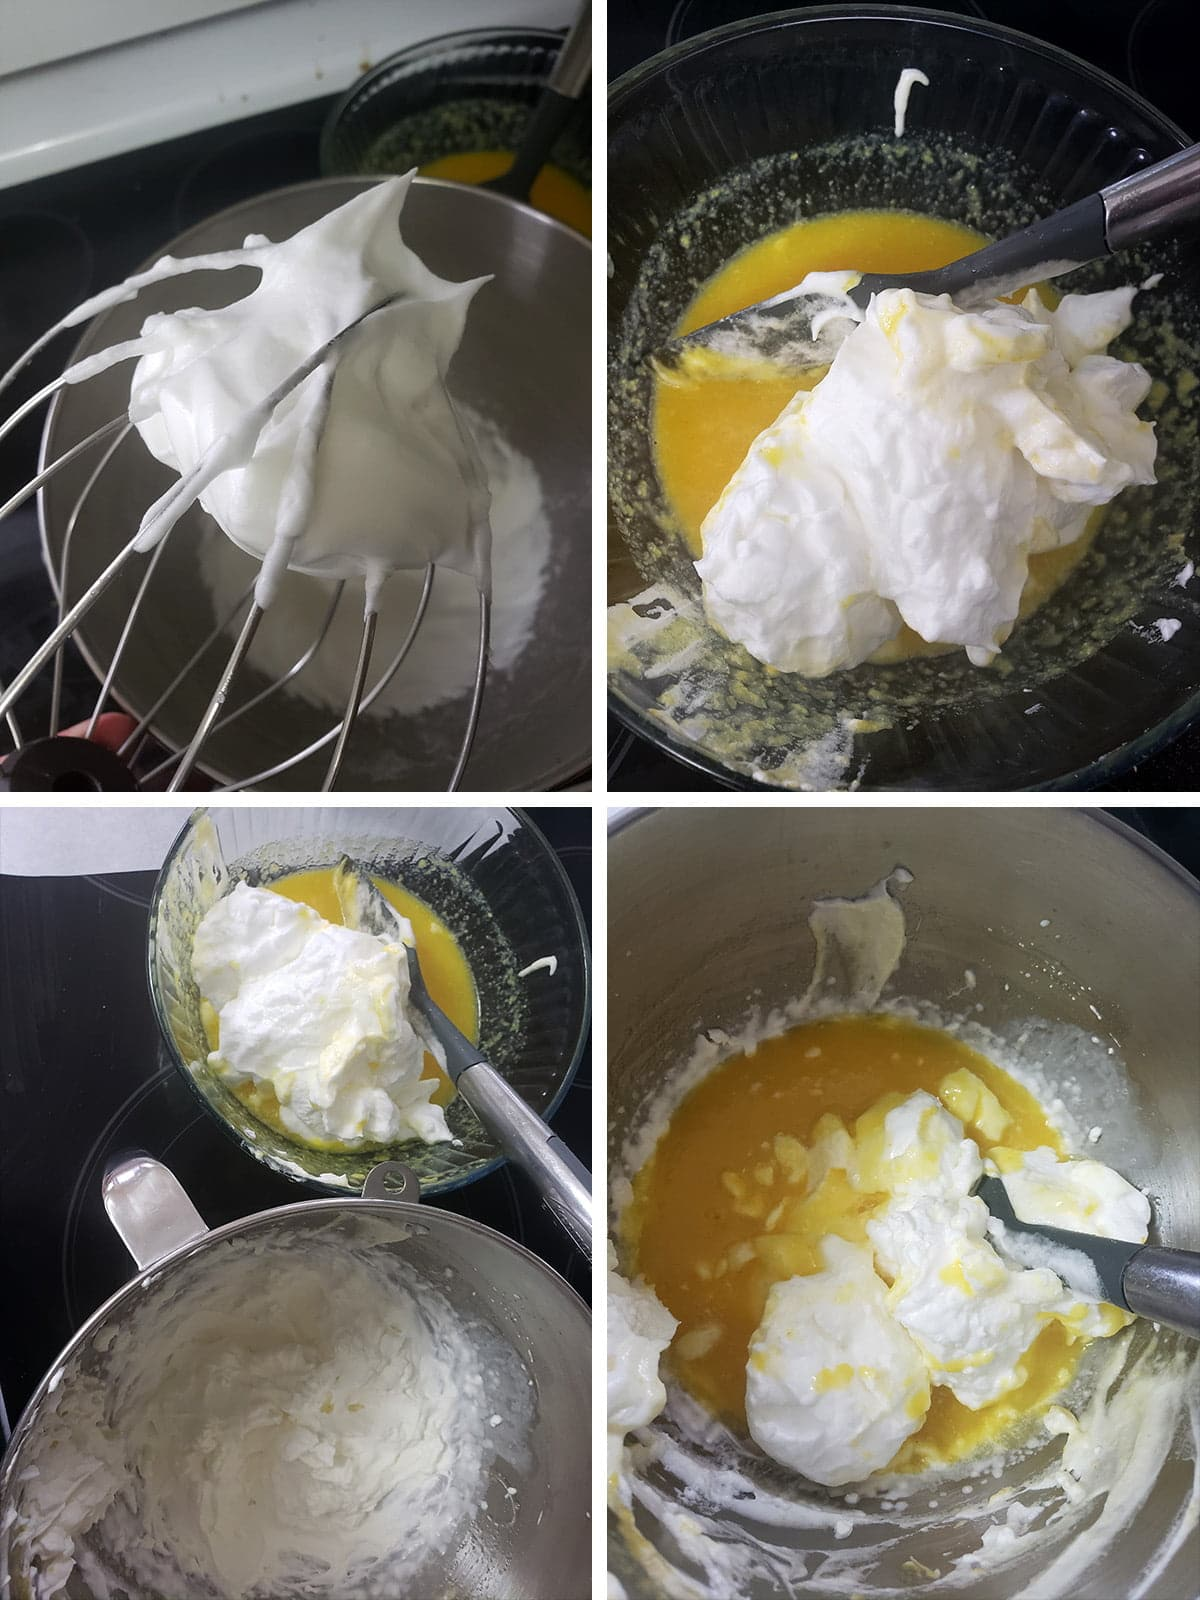 A 4 step compilation image, showing the addition of the whipped egg whites and whipped cream to the orange pulp.